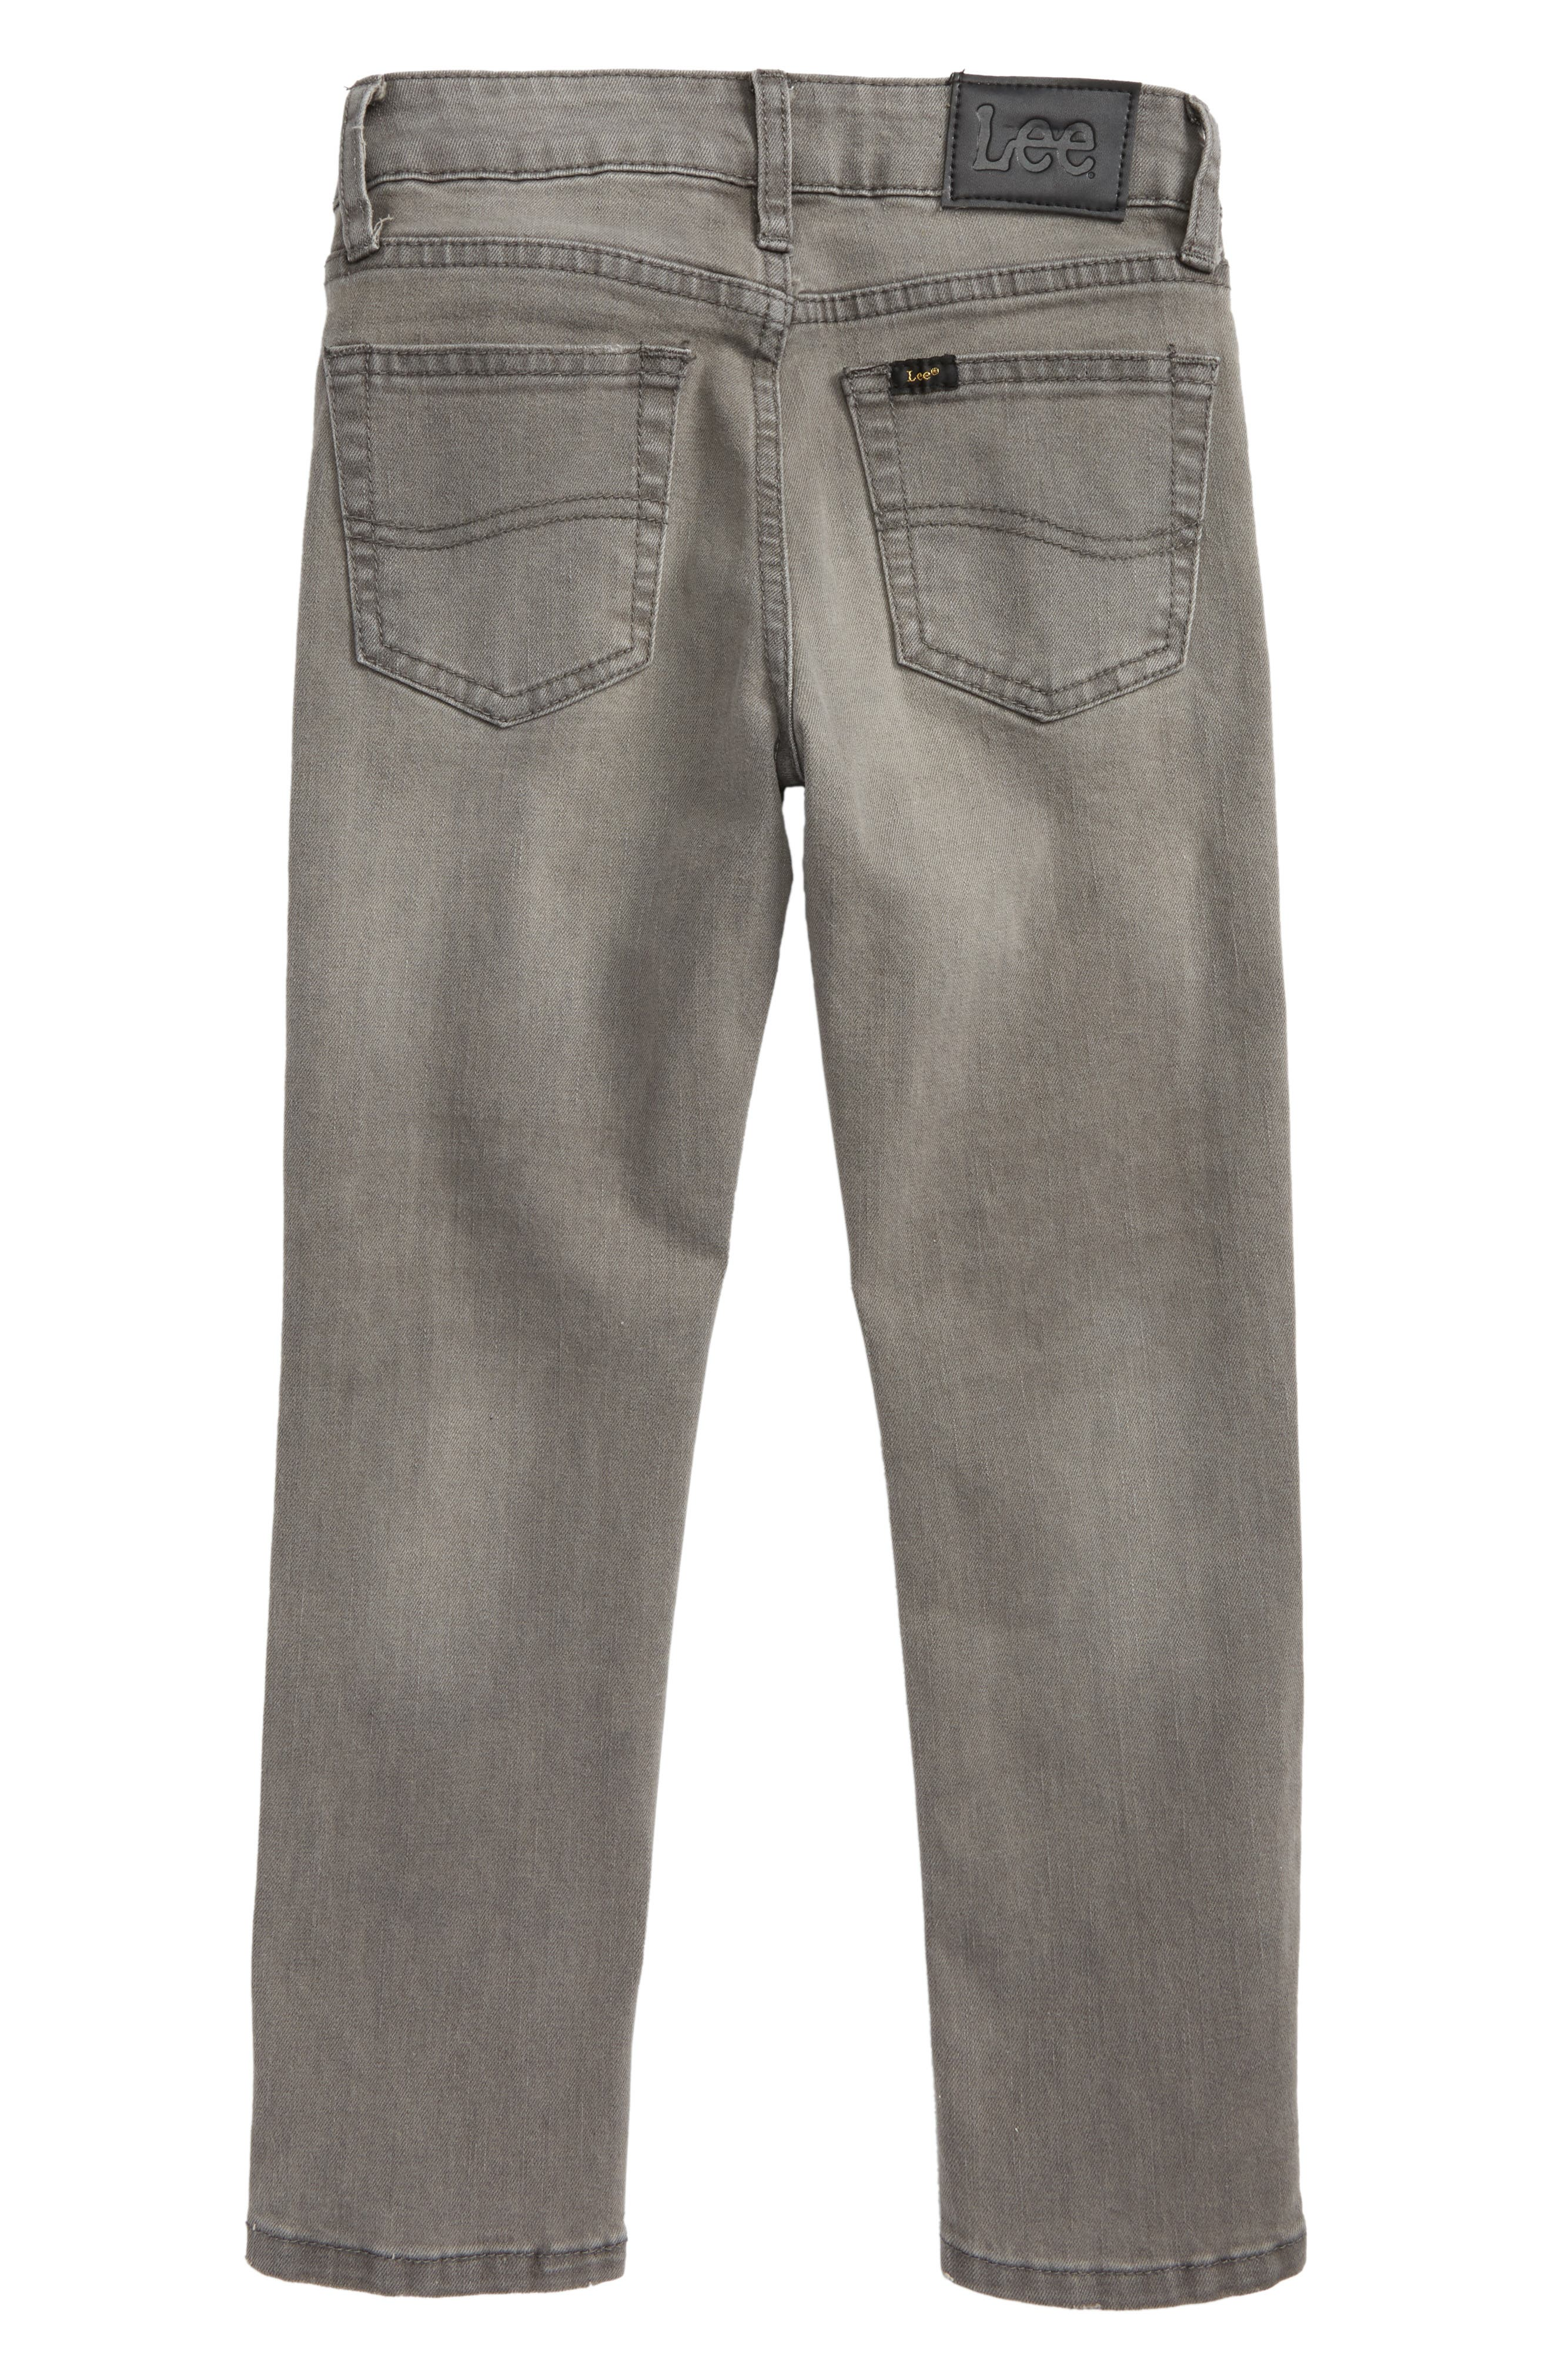 Skinny Fit Jeans,                             Alternate thumbnail 2, color,                             060